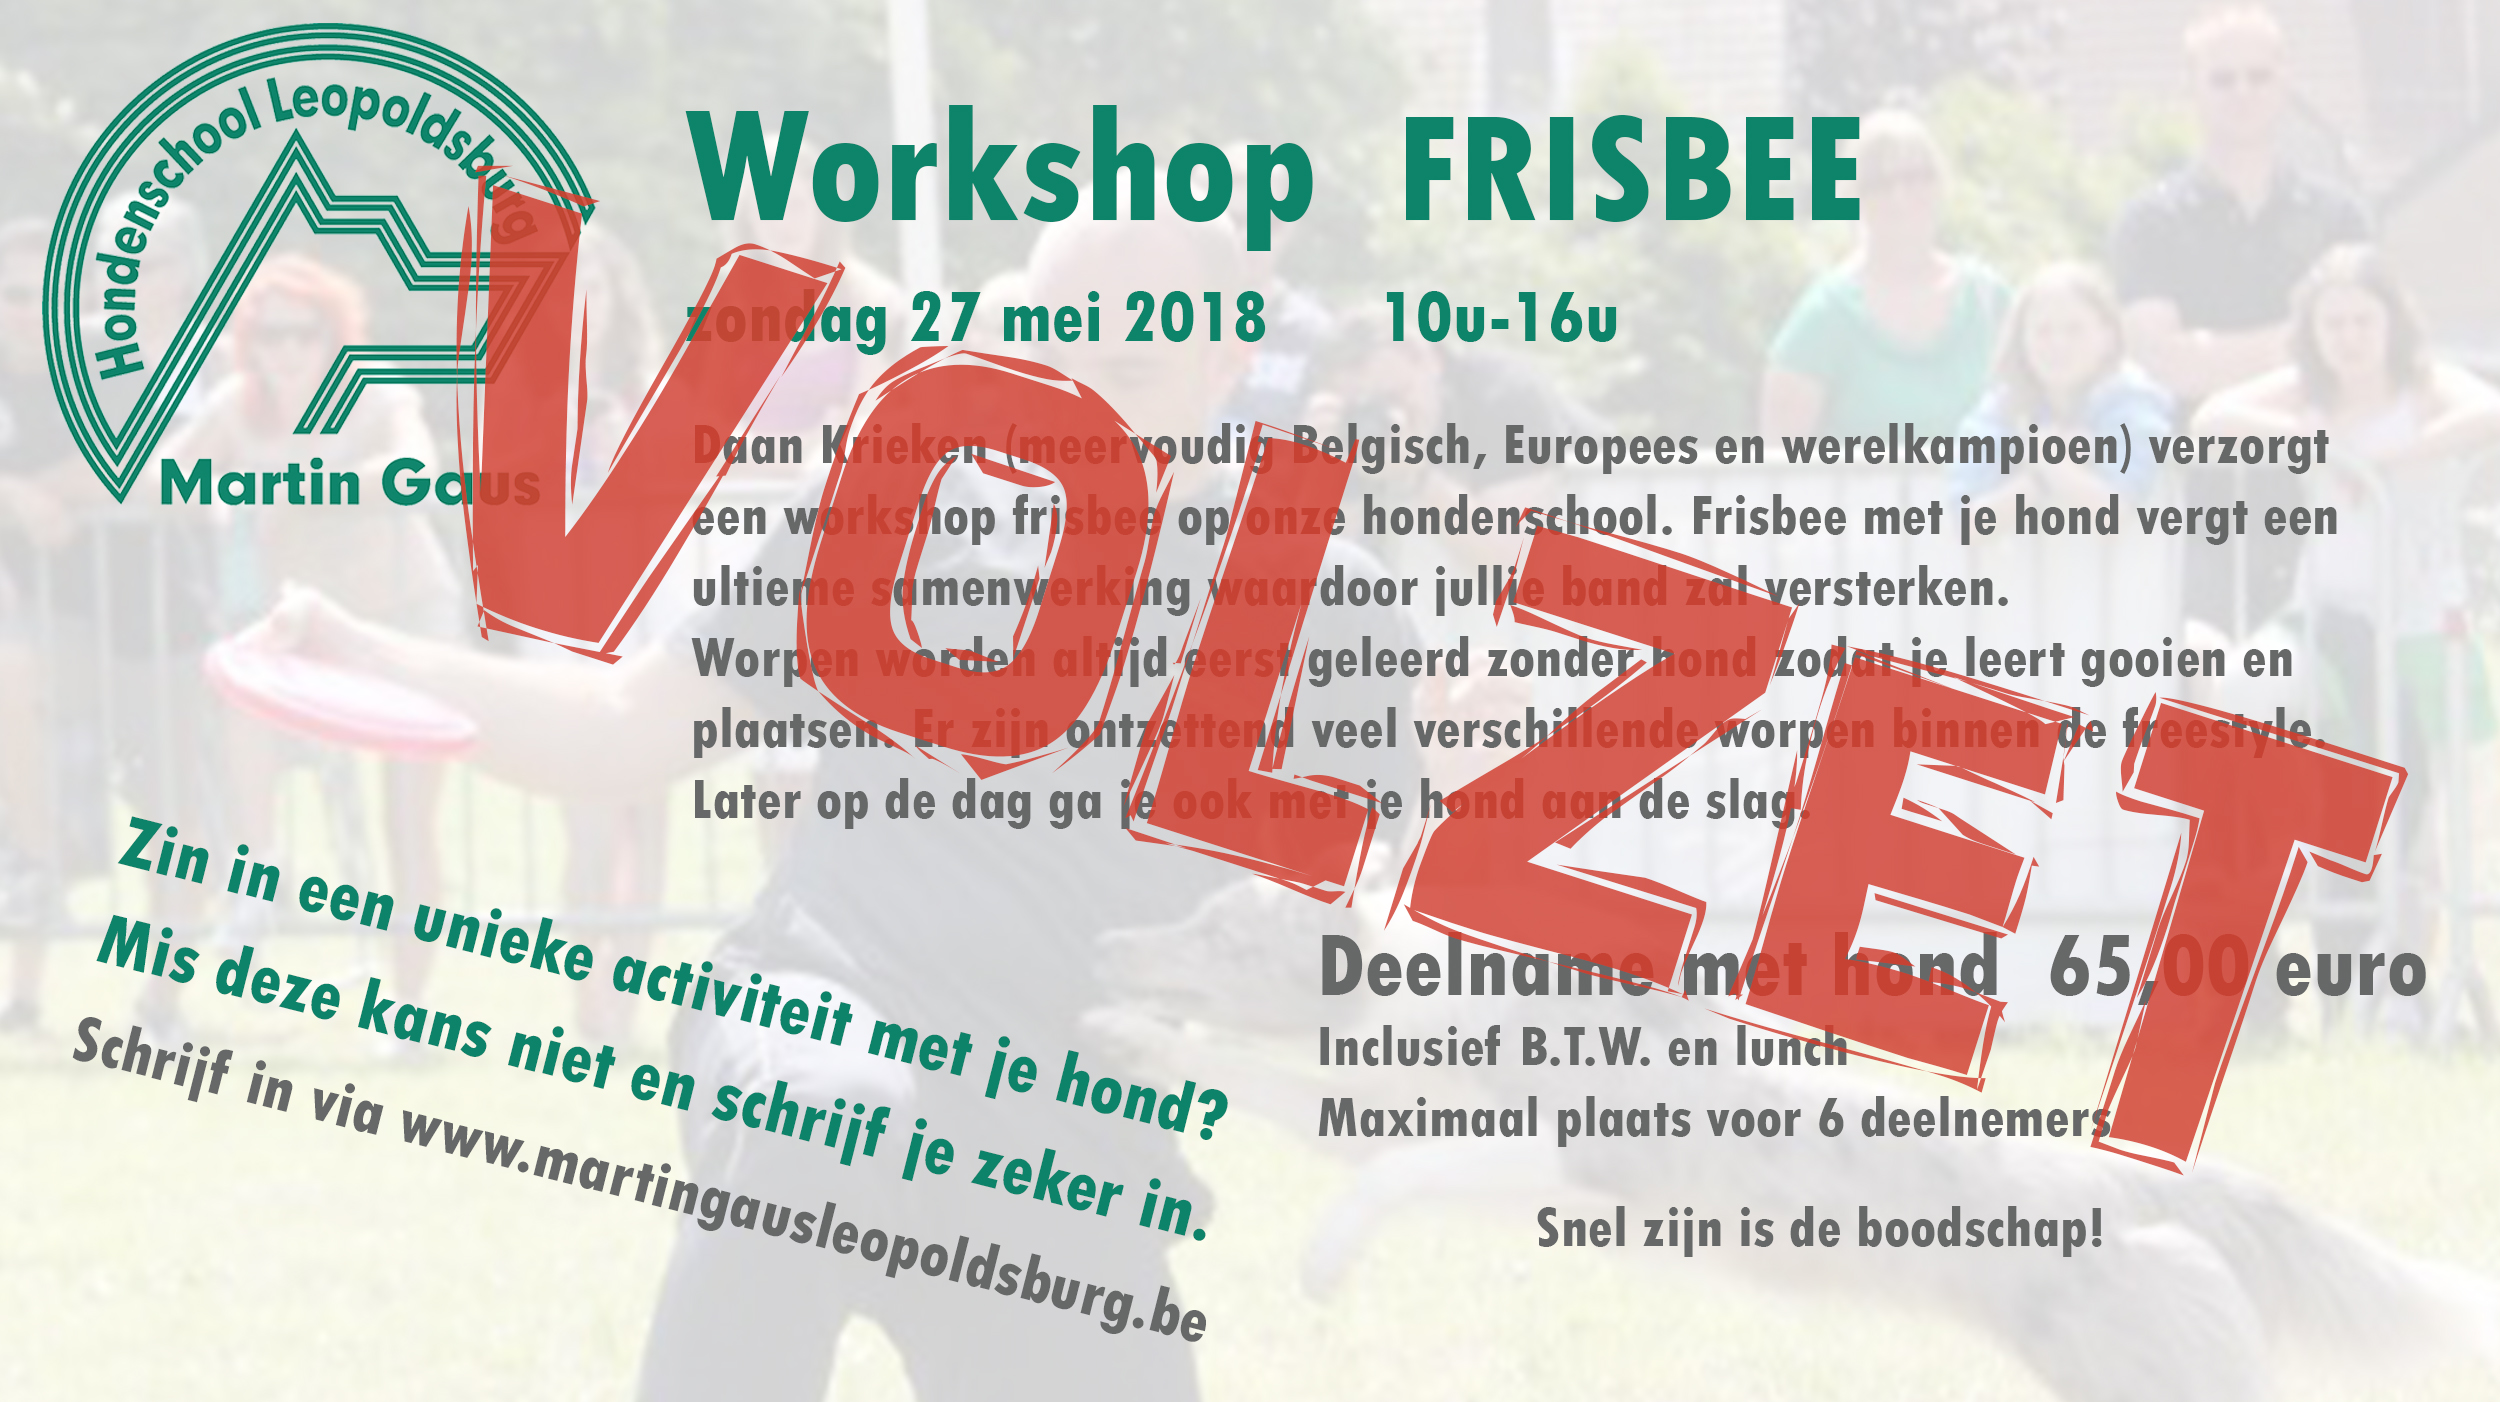 Workshop fribee